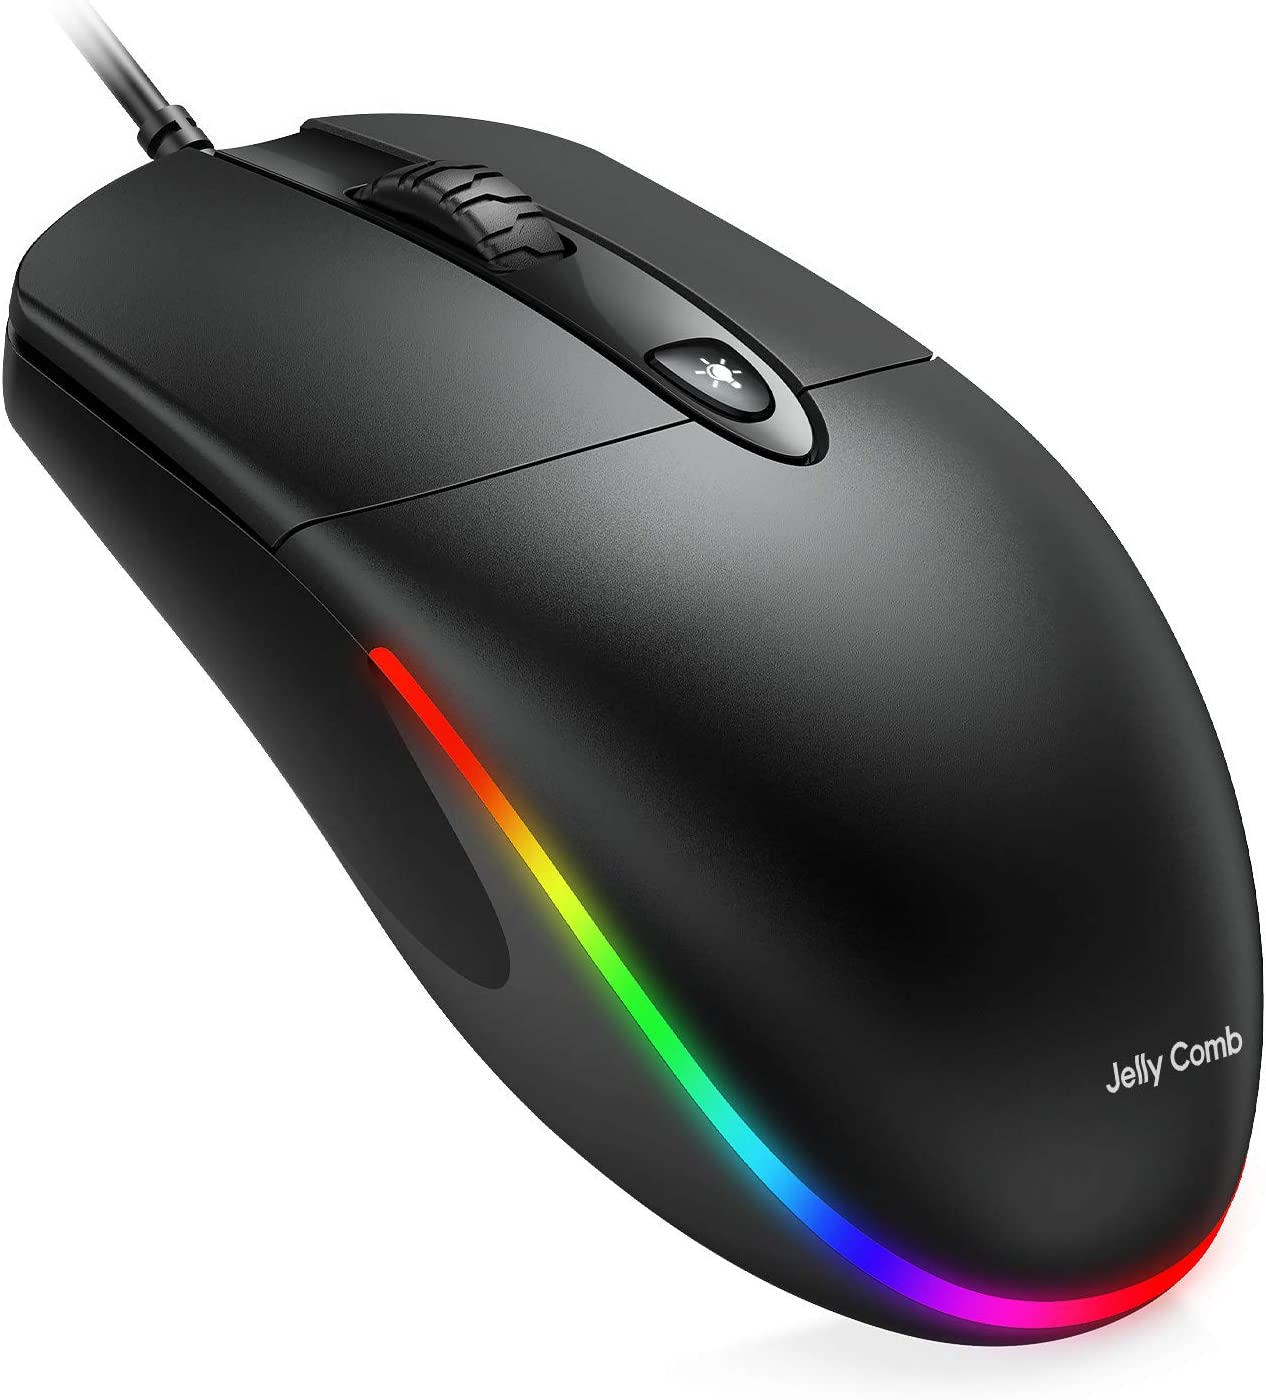 Jelly CombUSB Wired Mouse,RGB Optical SilentComputer Mouse,1600 DPI Office and Home Mice,for Windows PC, Laptop, Desktop, Notebook